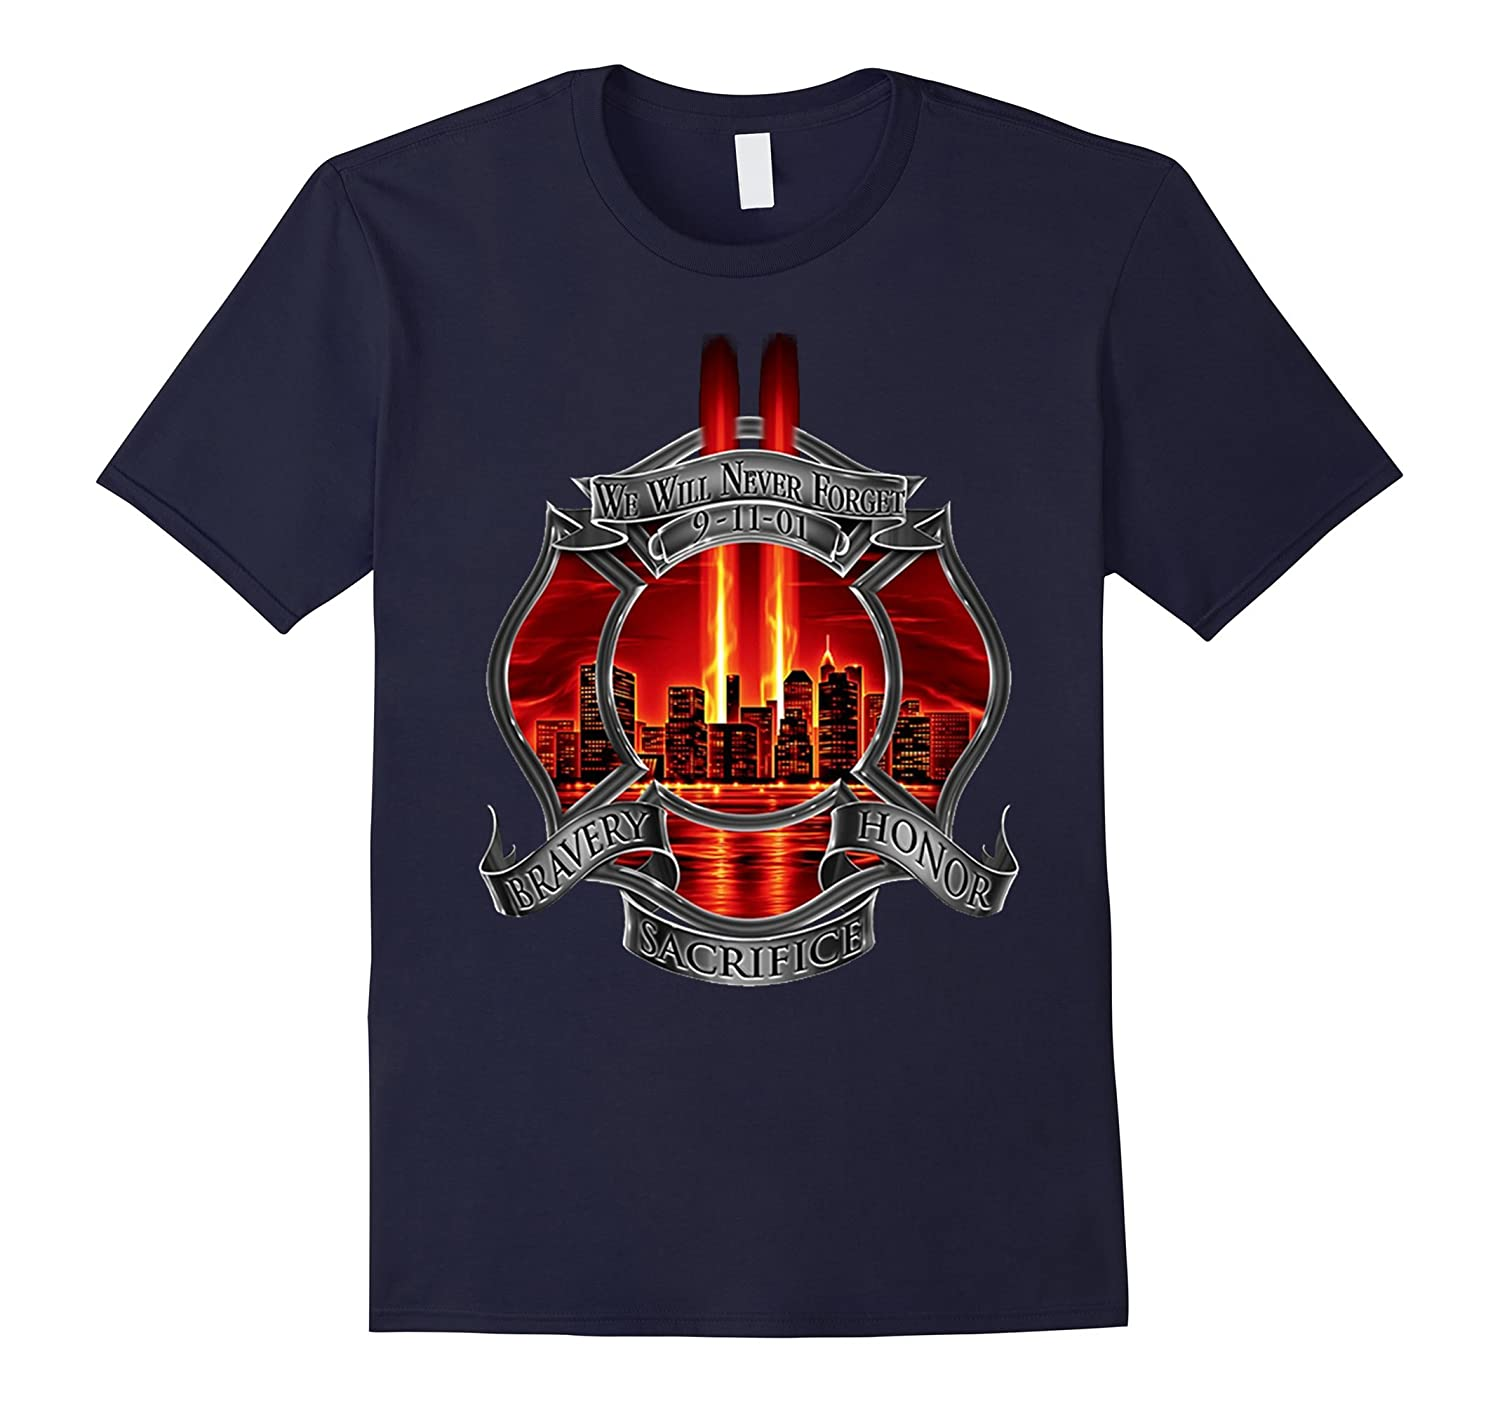 911 Memorial Never Forget Patriot Day T-Shirt Firefighter-TJ